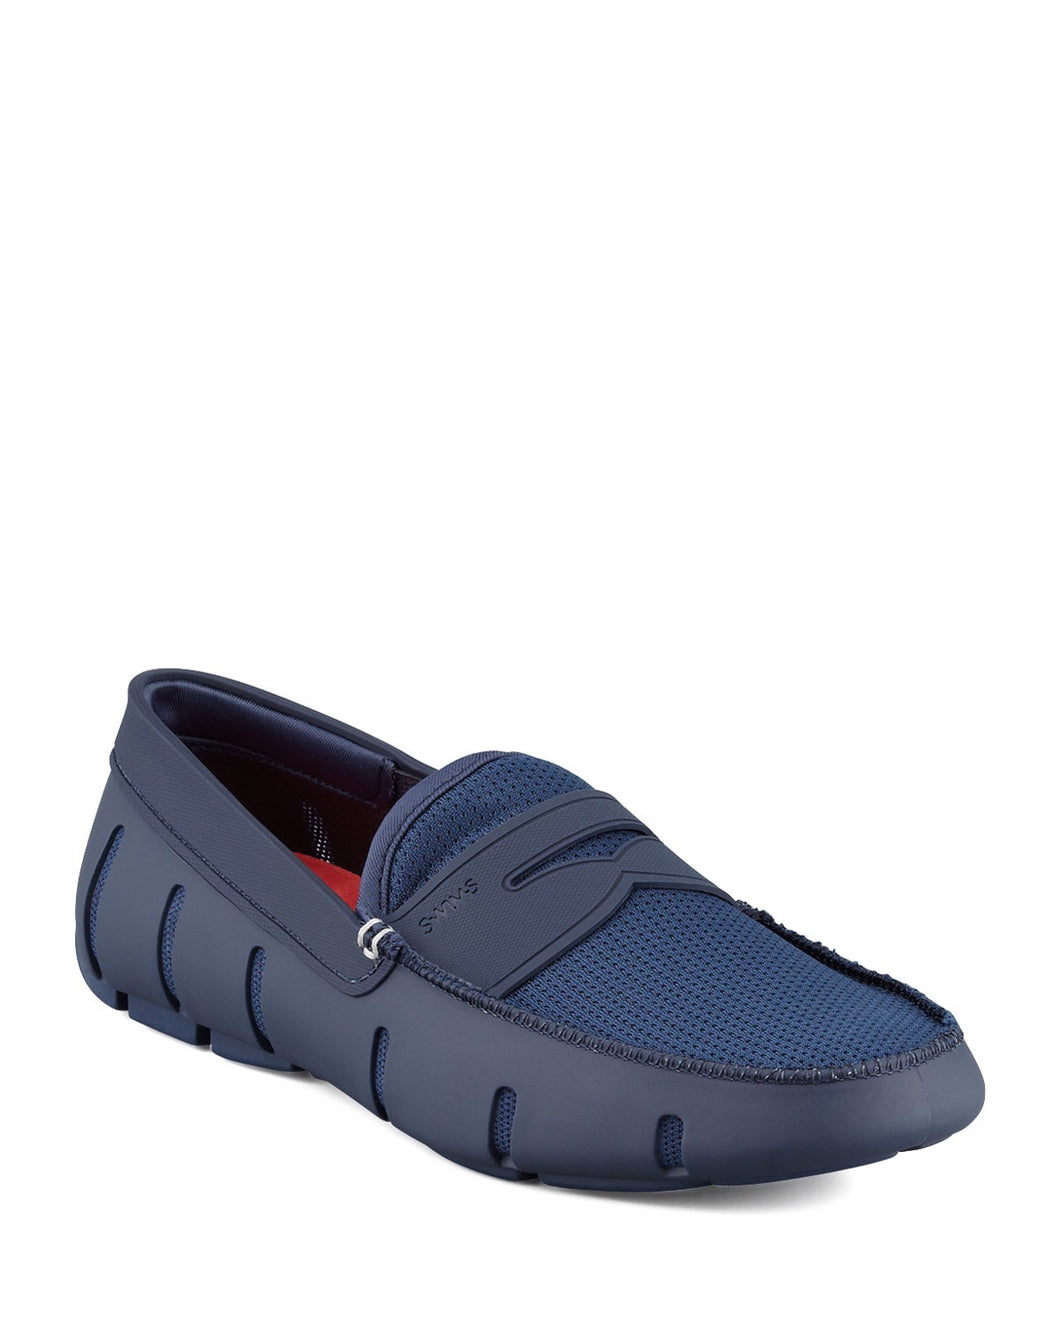 SWIMS 21201-002 PENNY LOAFER